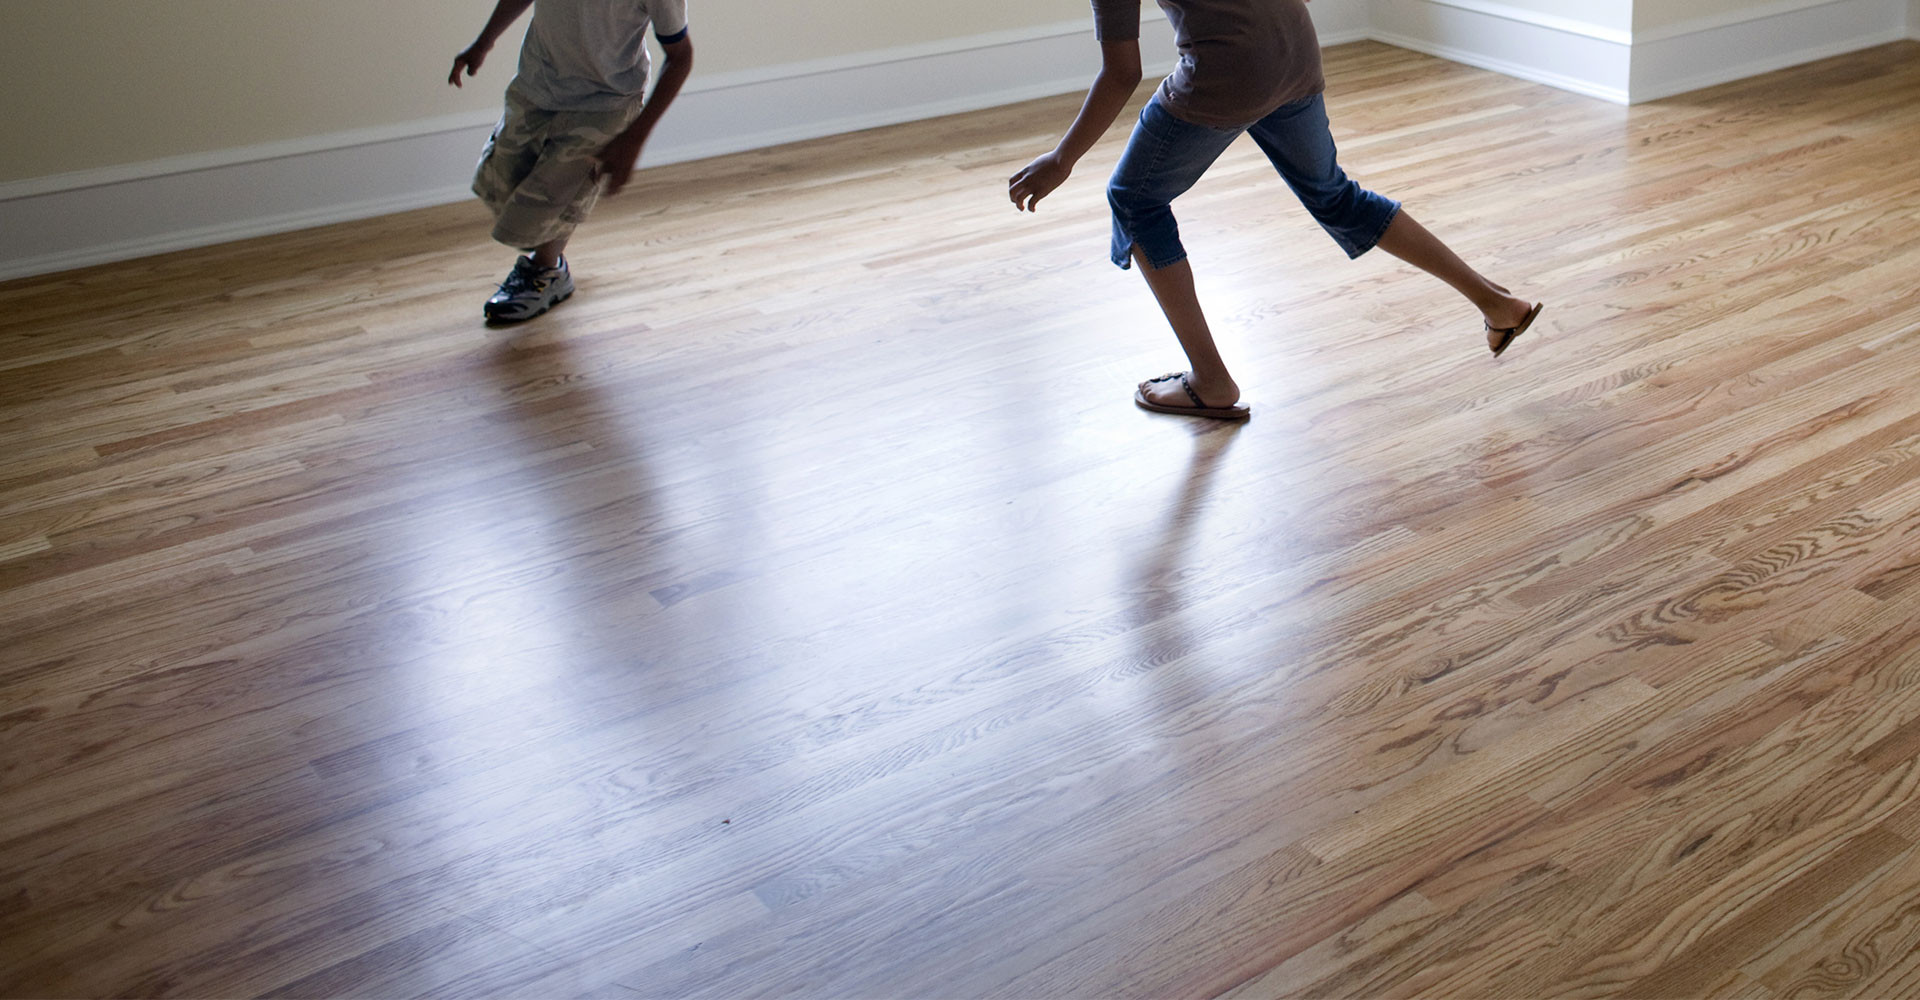 Hardwood Floor Refinishing norfolk Va Of Home norfolk Hardwood Flooring Carpets and Engineered Flooring Regarding norfolk Flooring